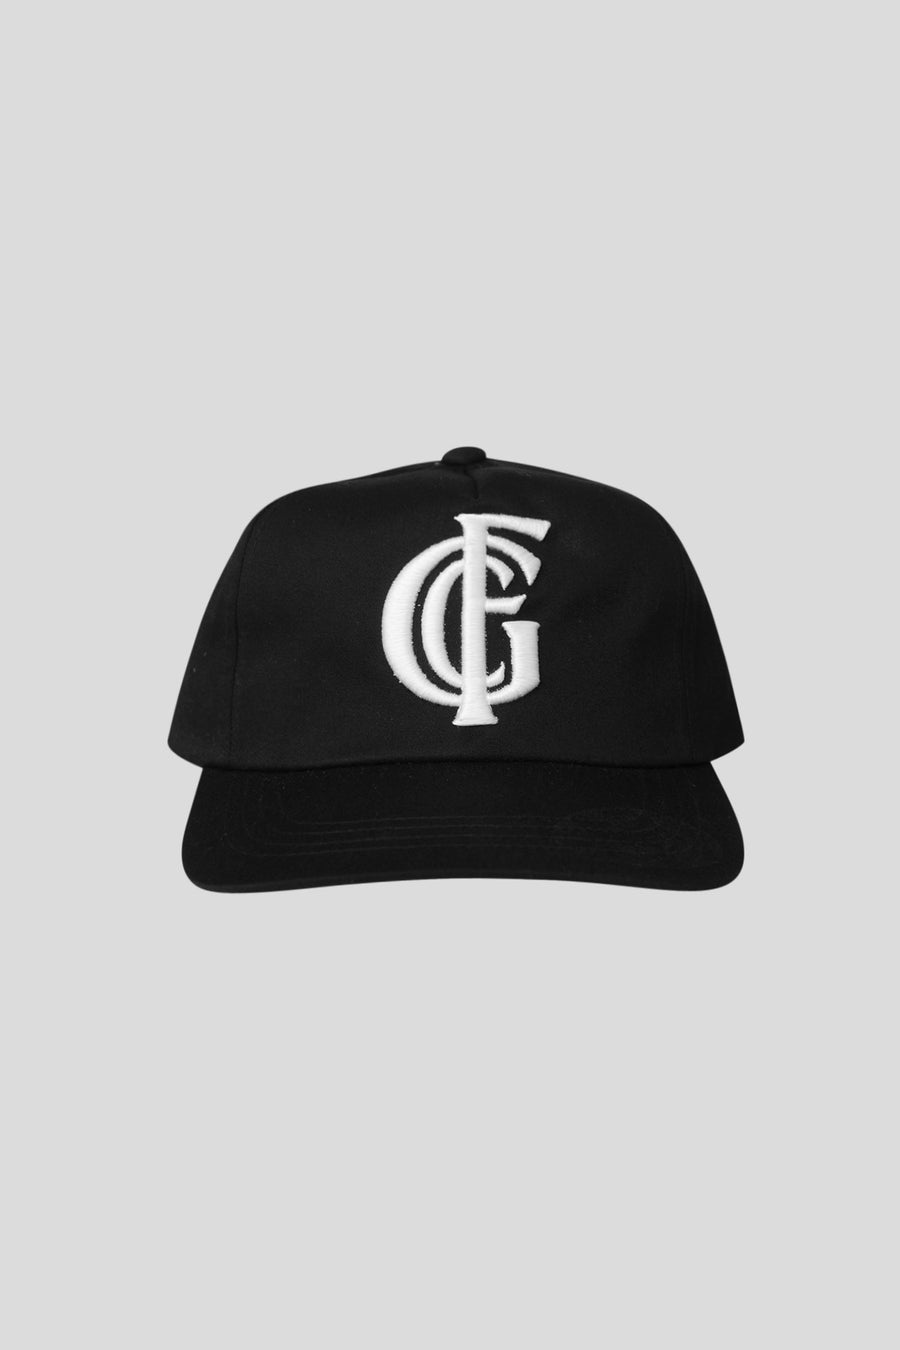 GFC - Monogram Hat - Black/White